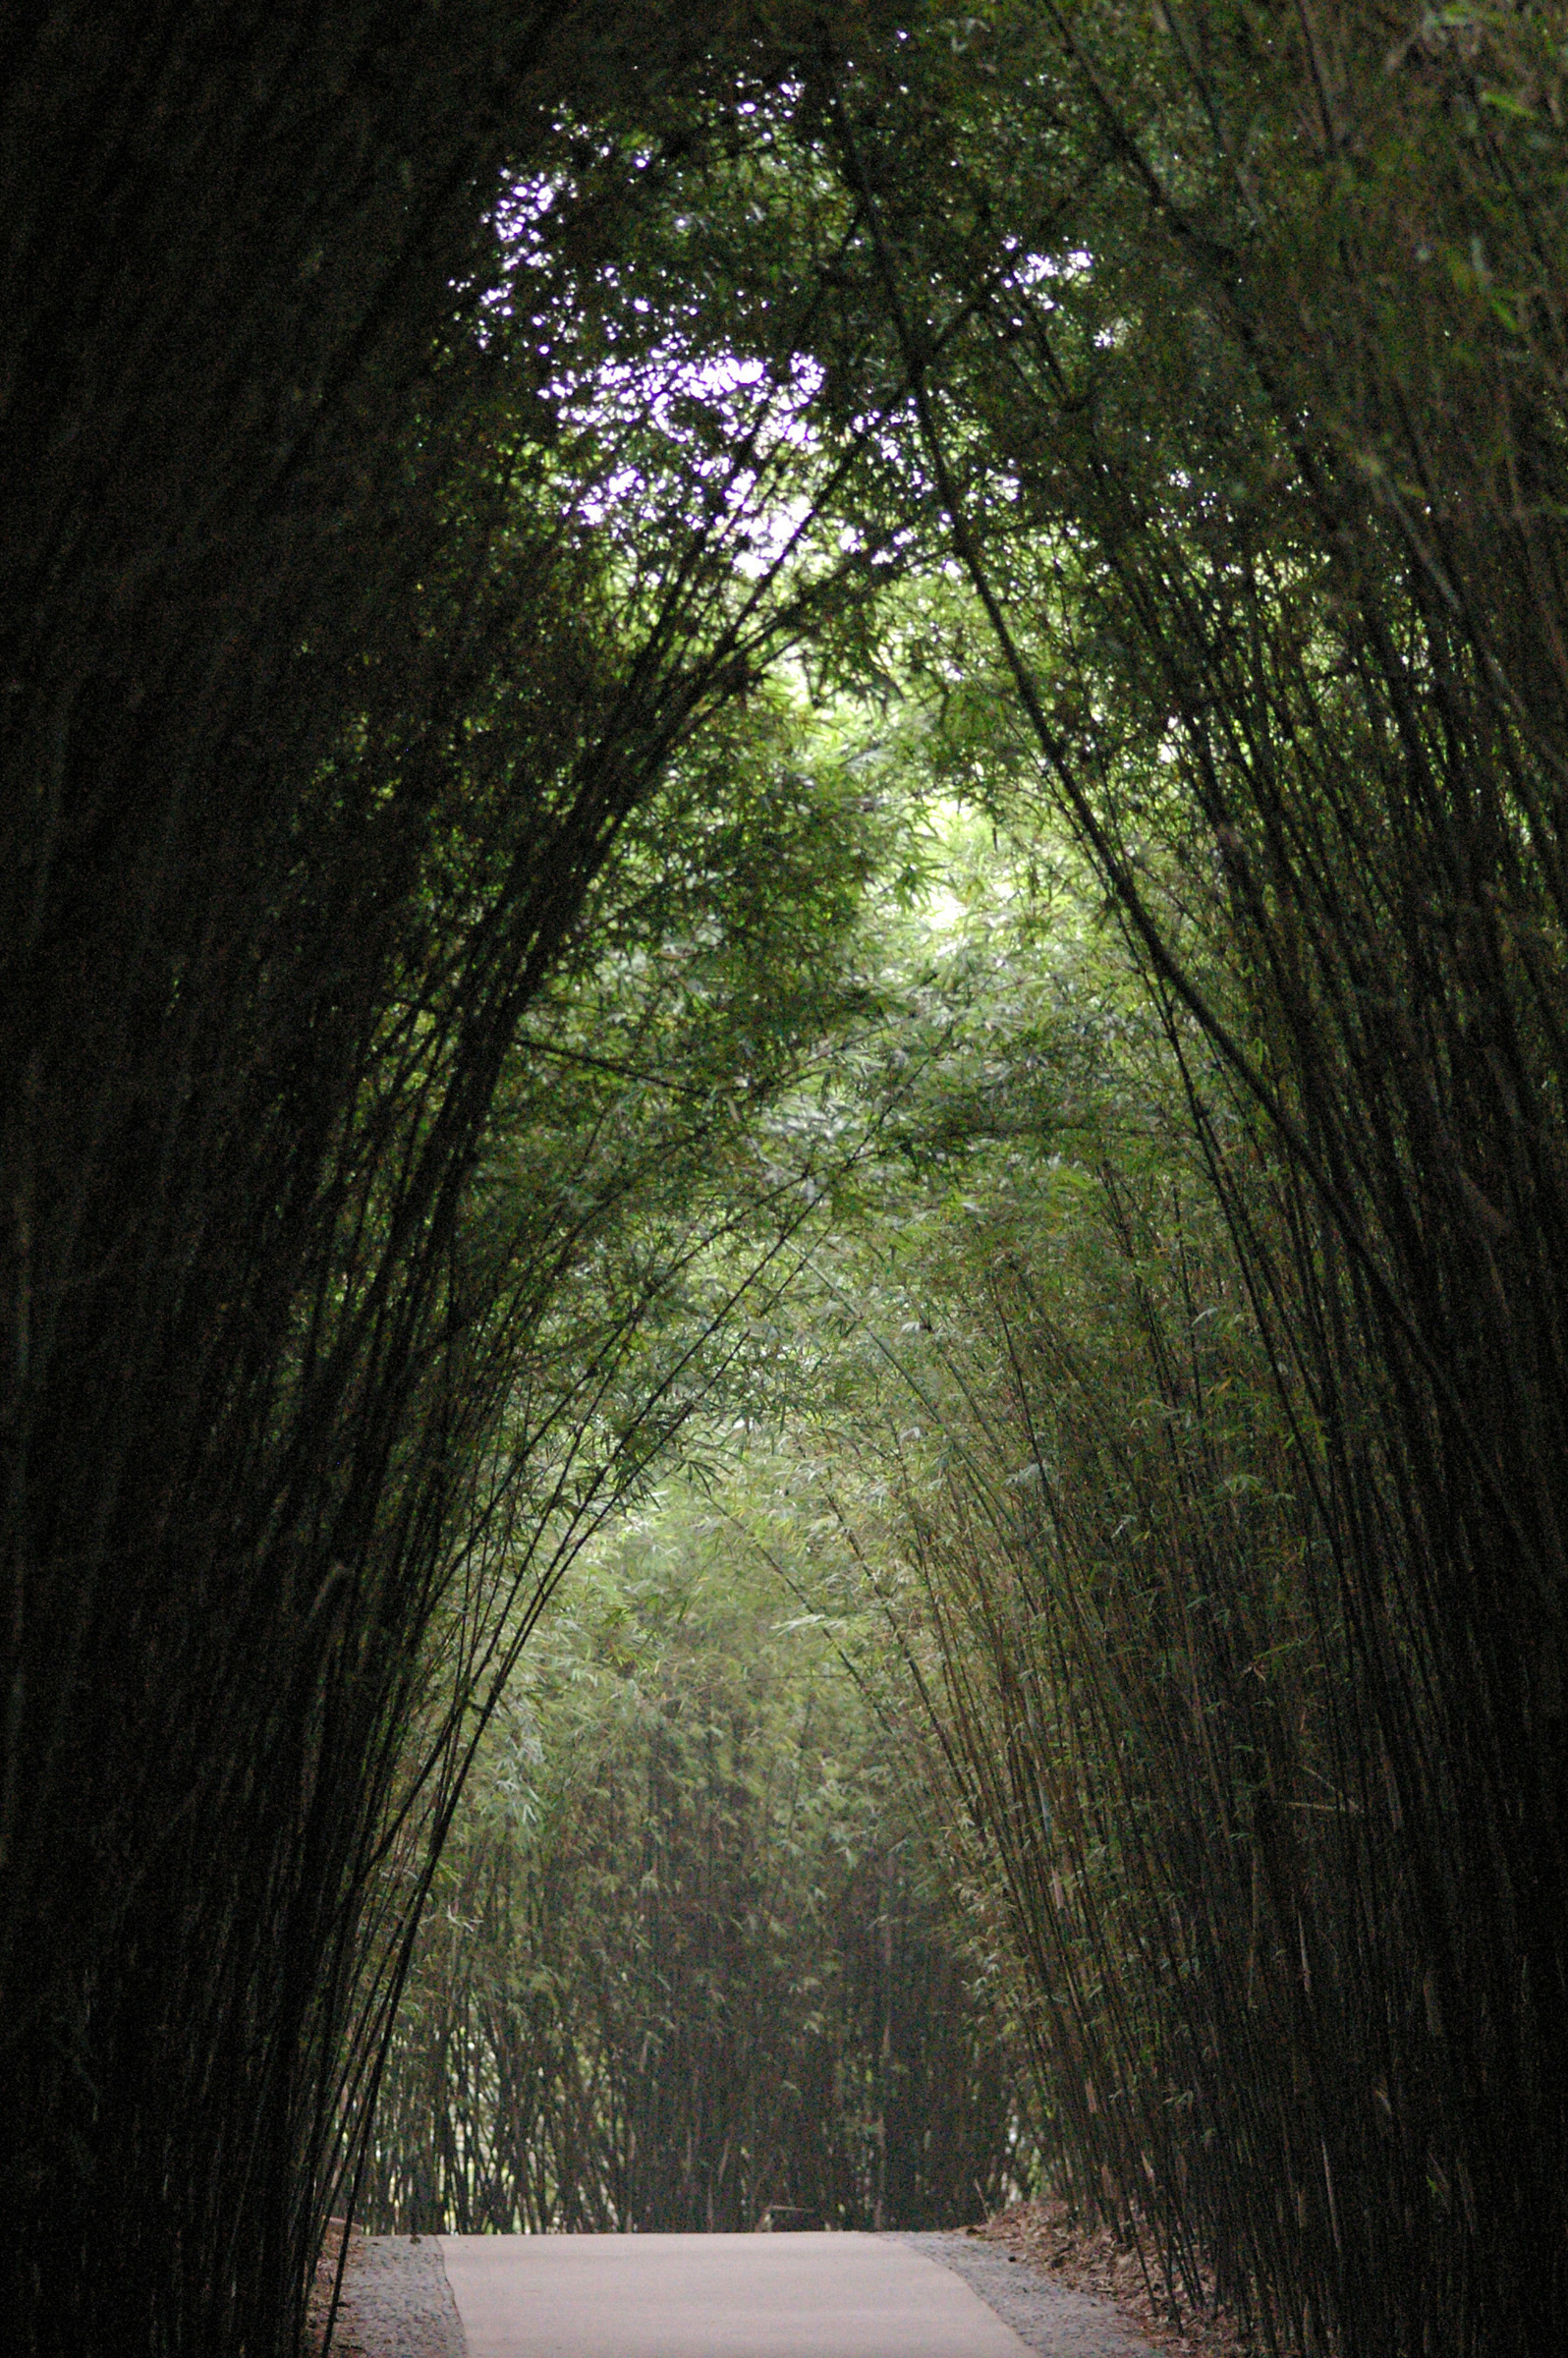 Beautiful Attraction of Tall Bamboo Trees Forming Arch on the Pathway at China